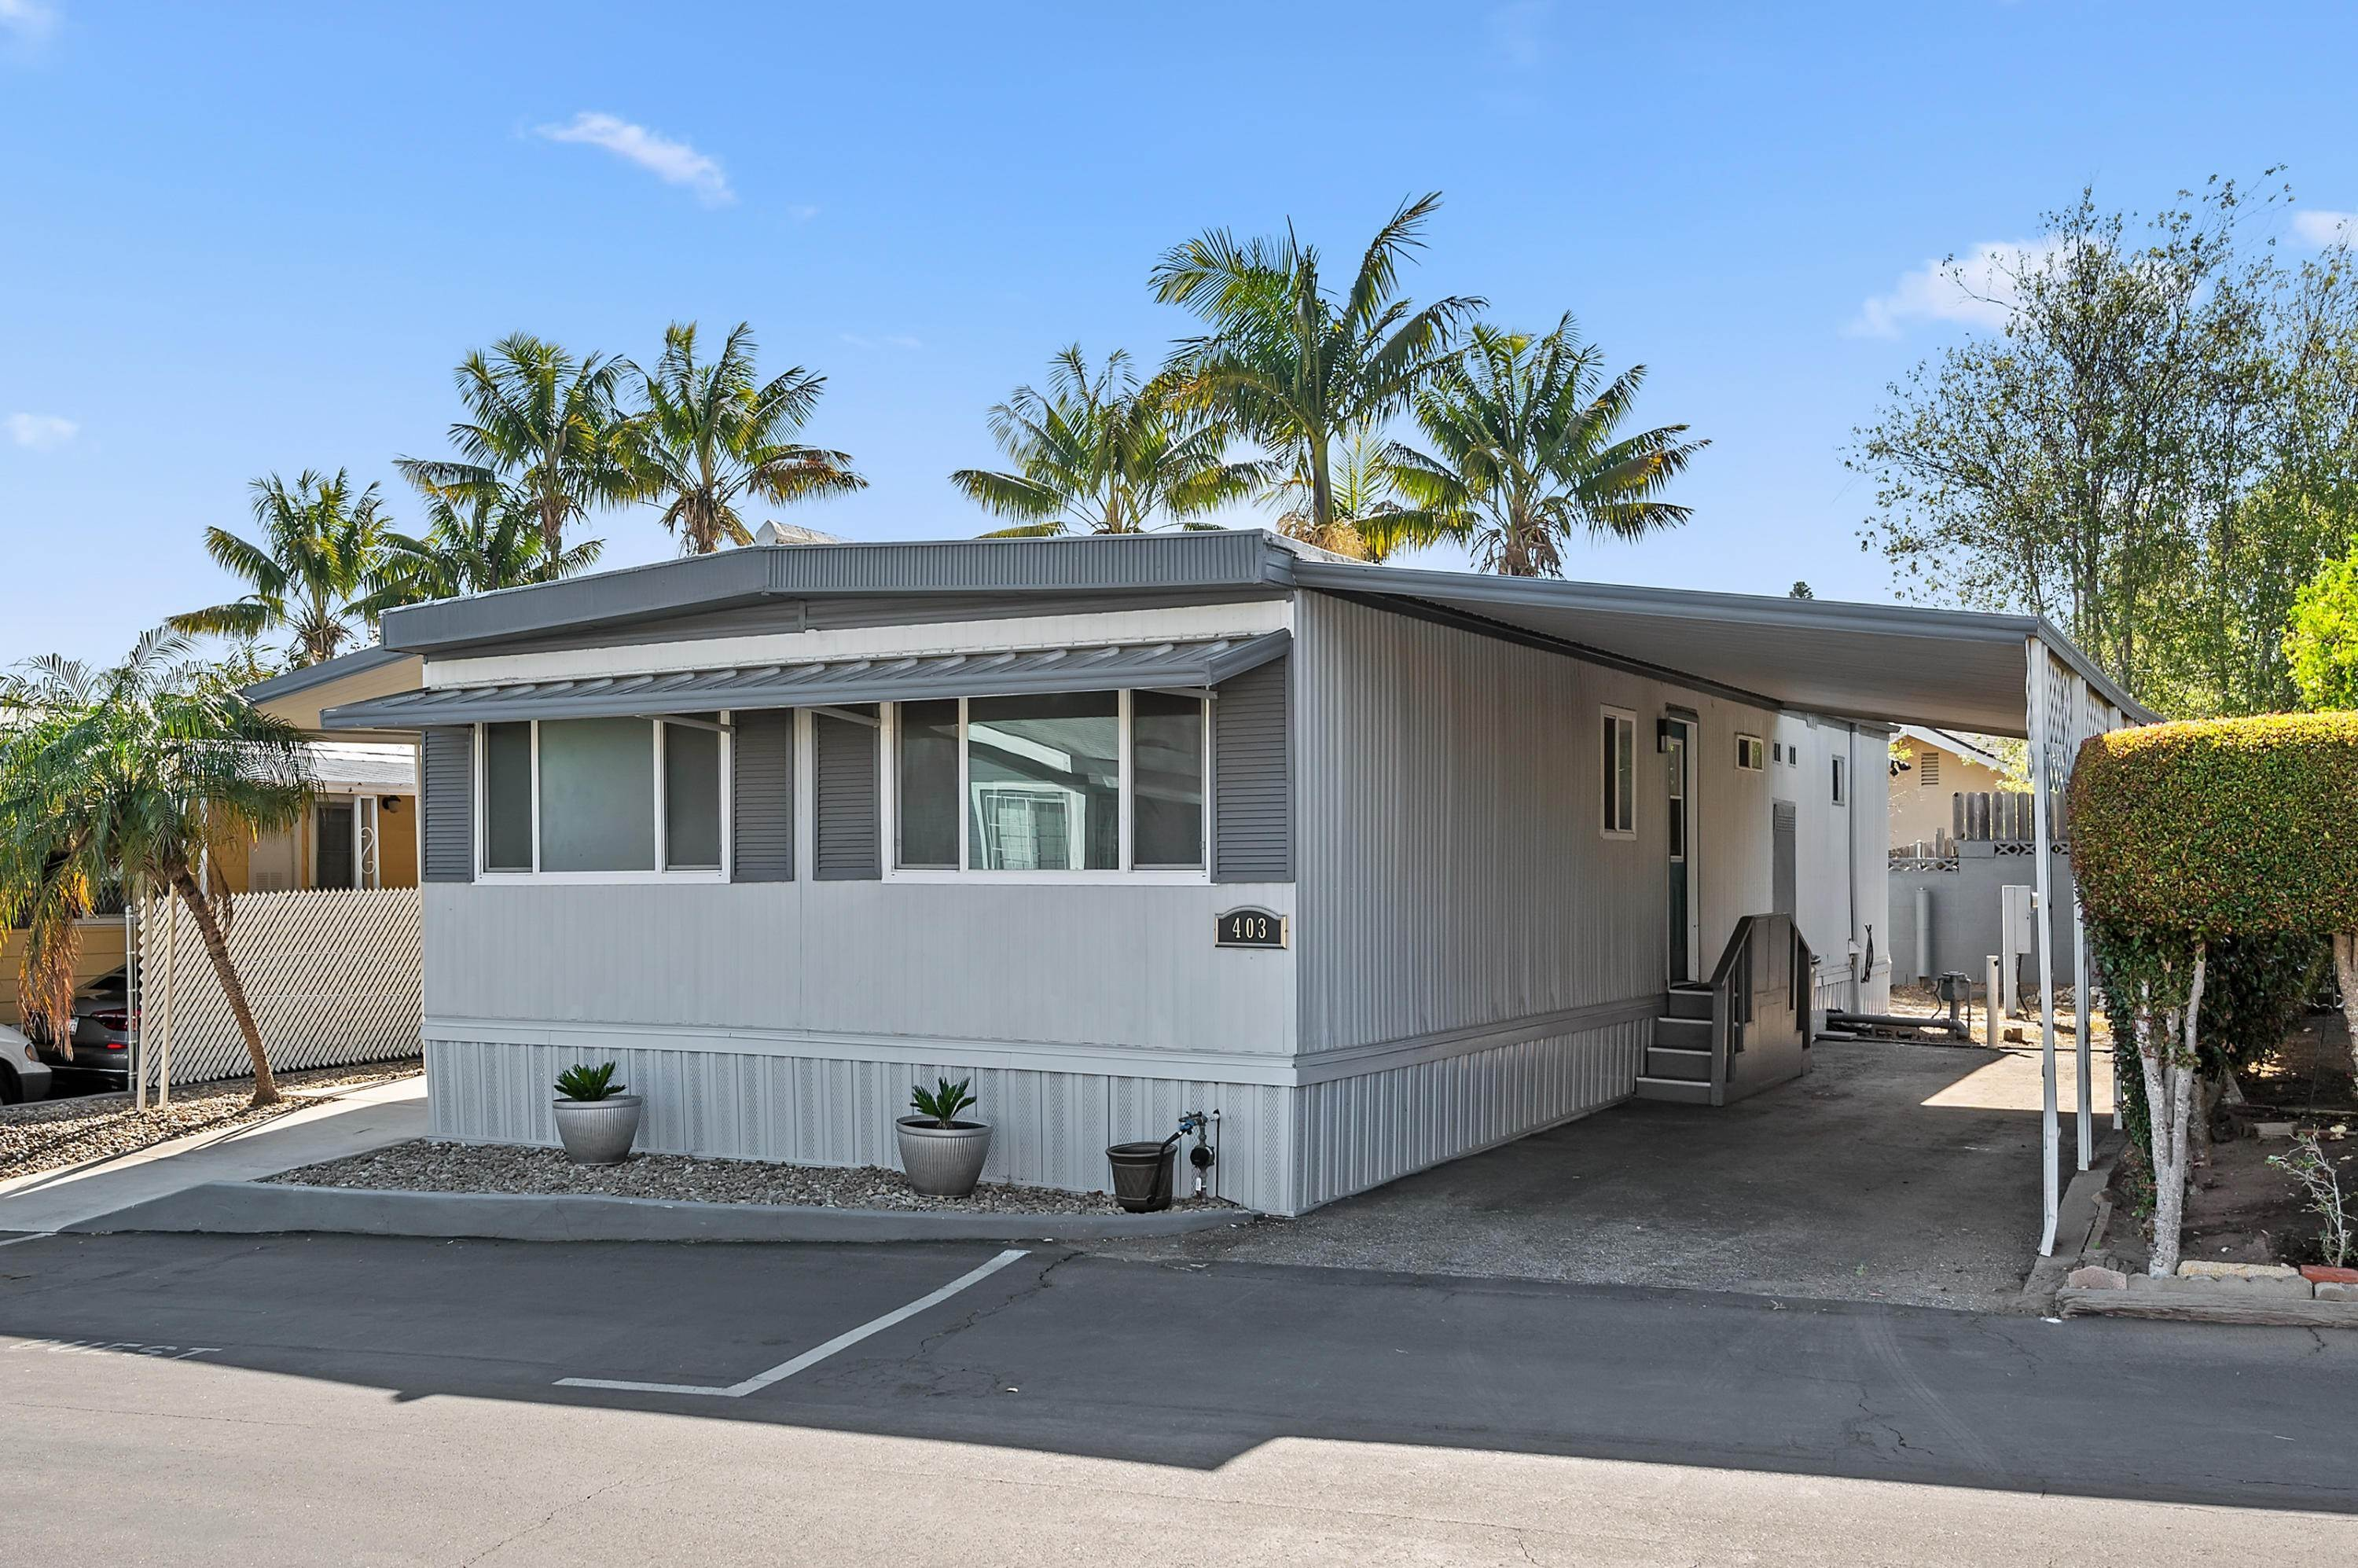 Manufactured Housing for Sale at 7465 Hollister Avenue Goleta, California 93117 United States